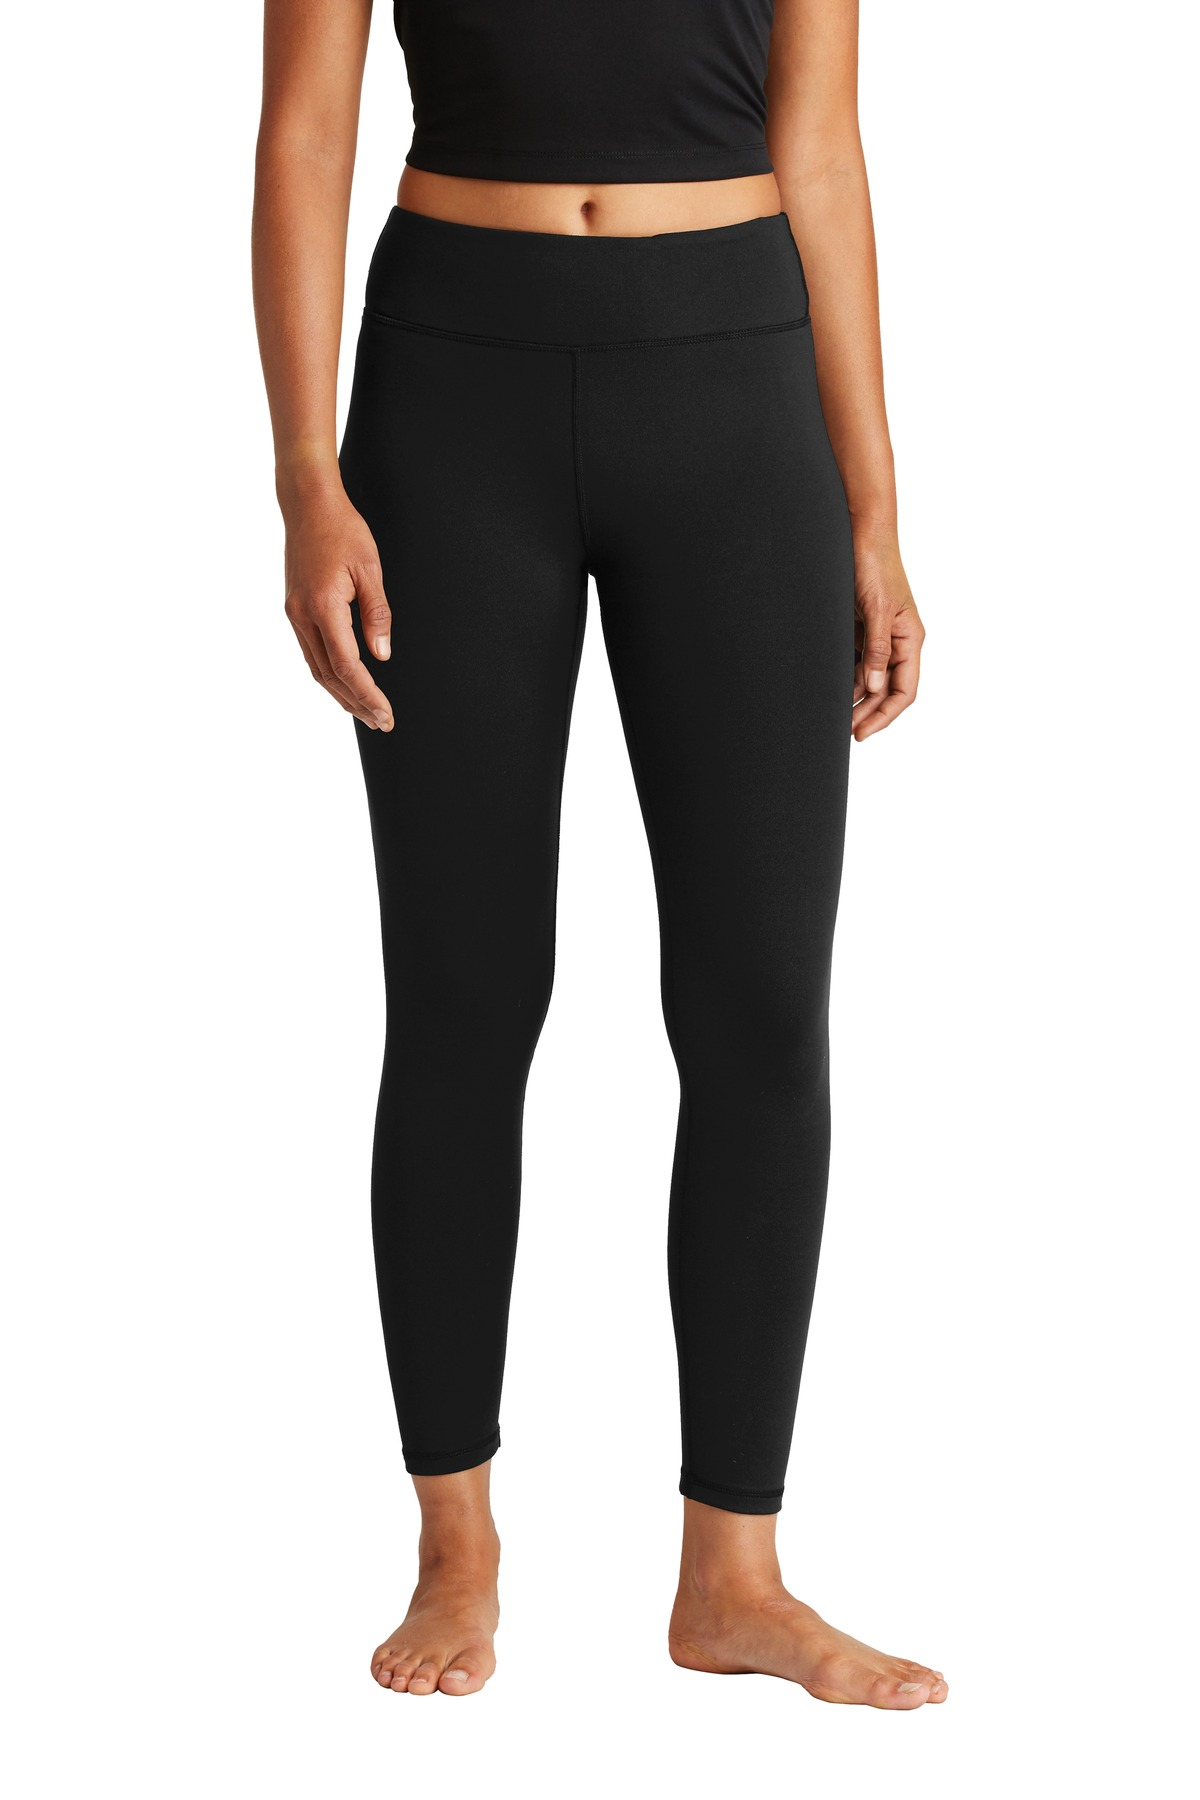 Sport-Tek  ®  Ladies 7/8 Legging. LPST890 - Black